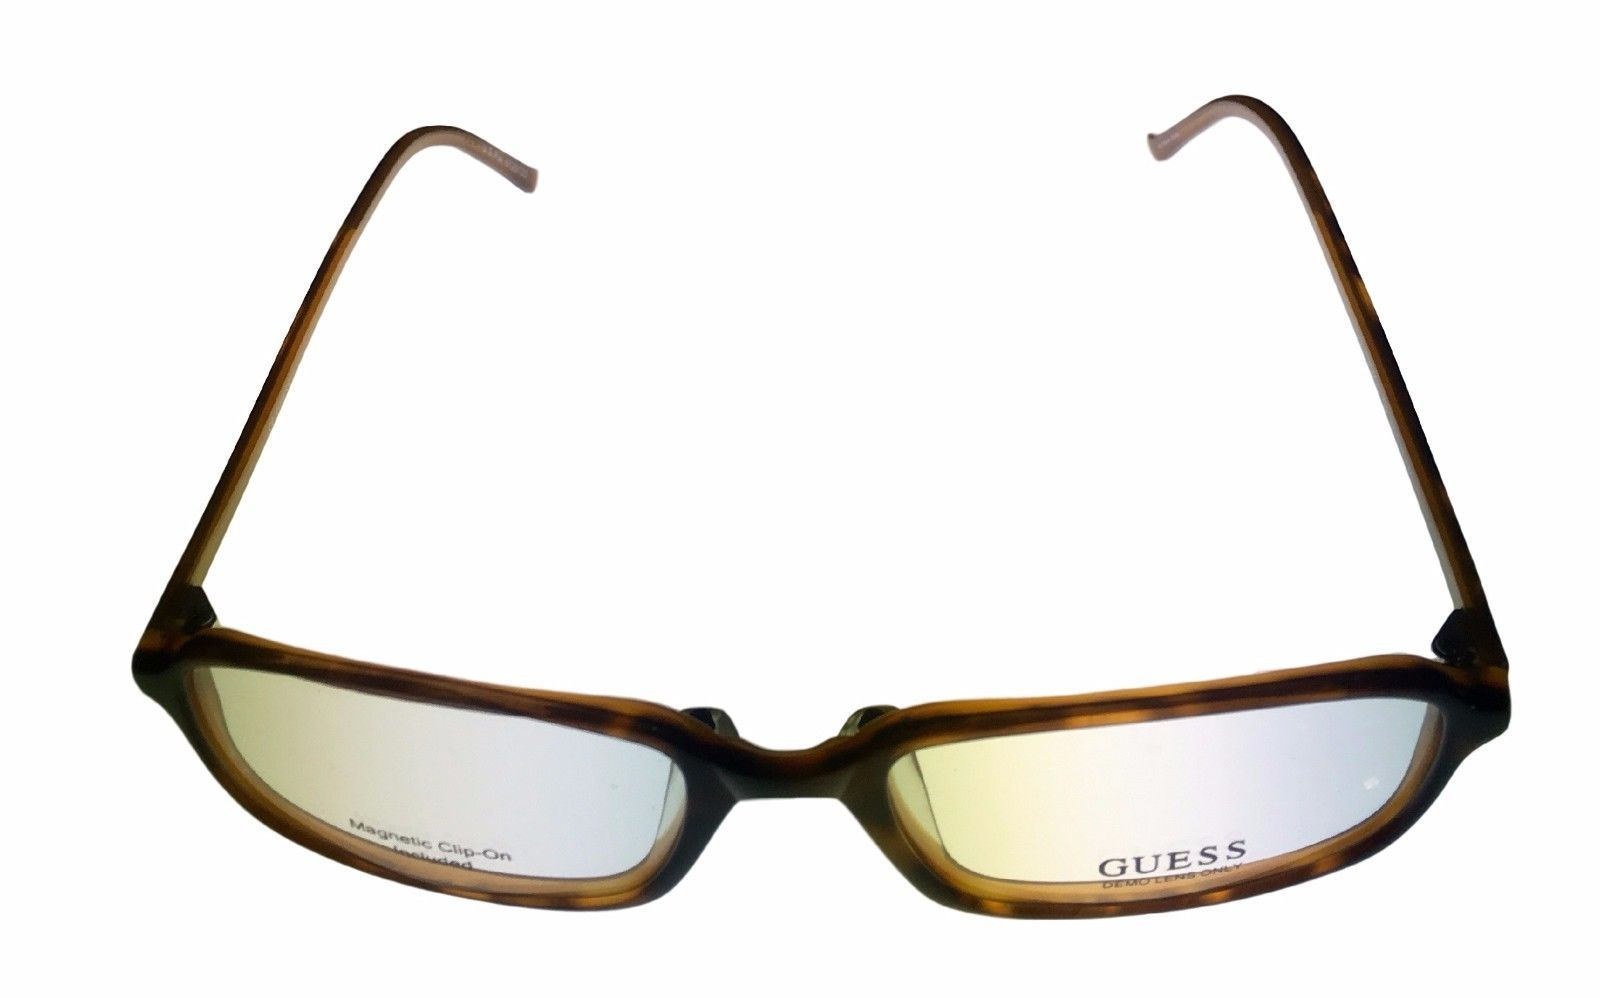 Guess Ophthalmic Mens Eyeglass Plastic Rectangle 1331 Demi Amber image 2